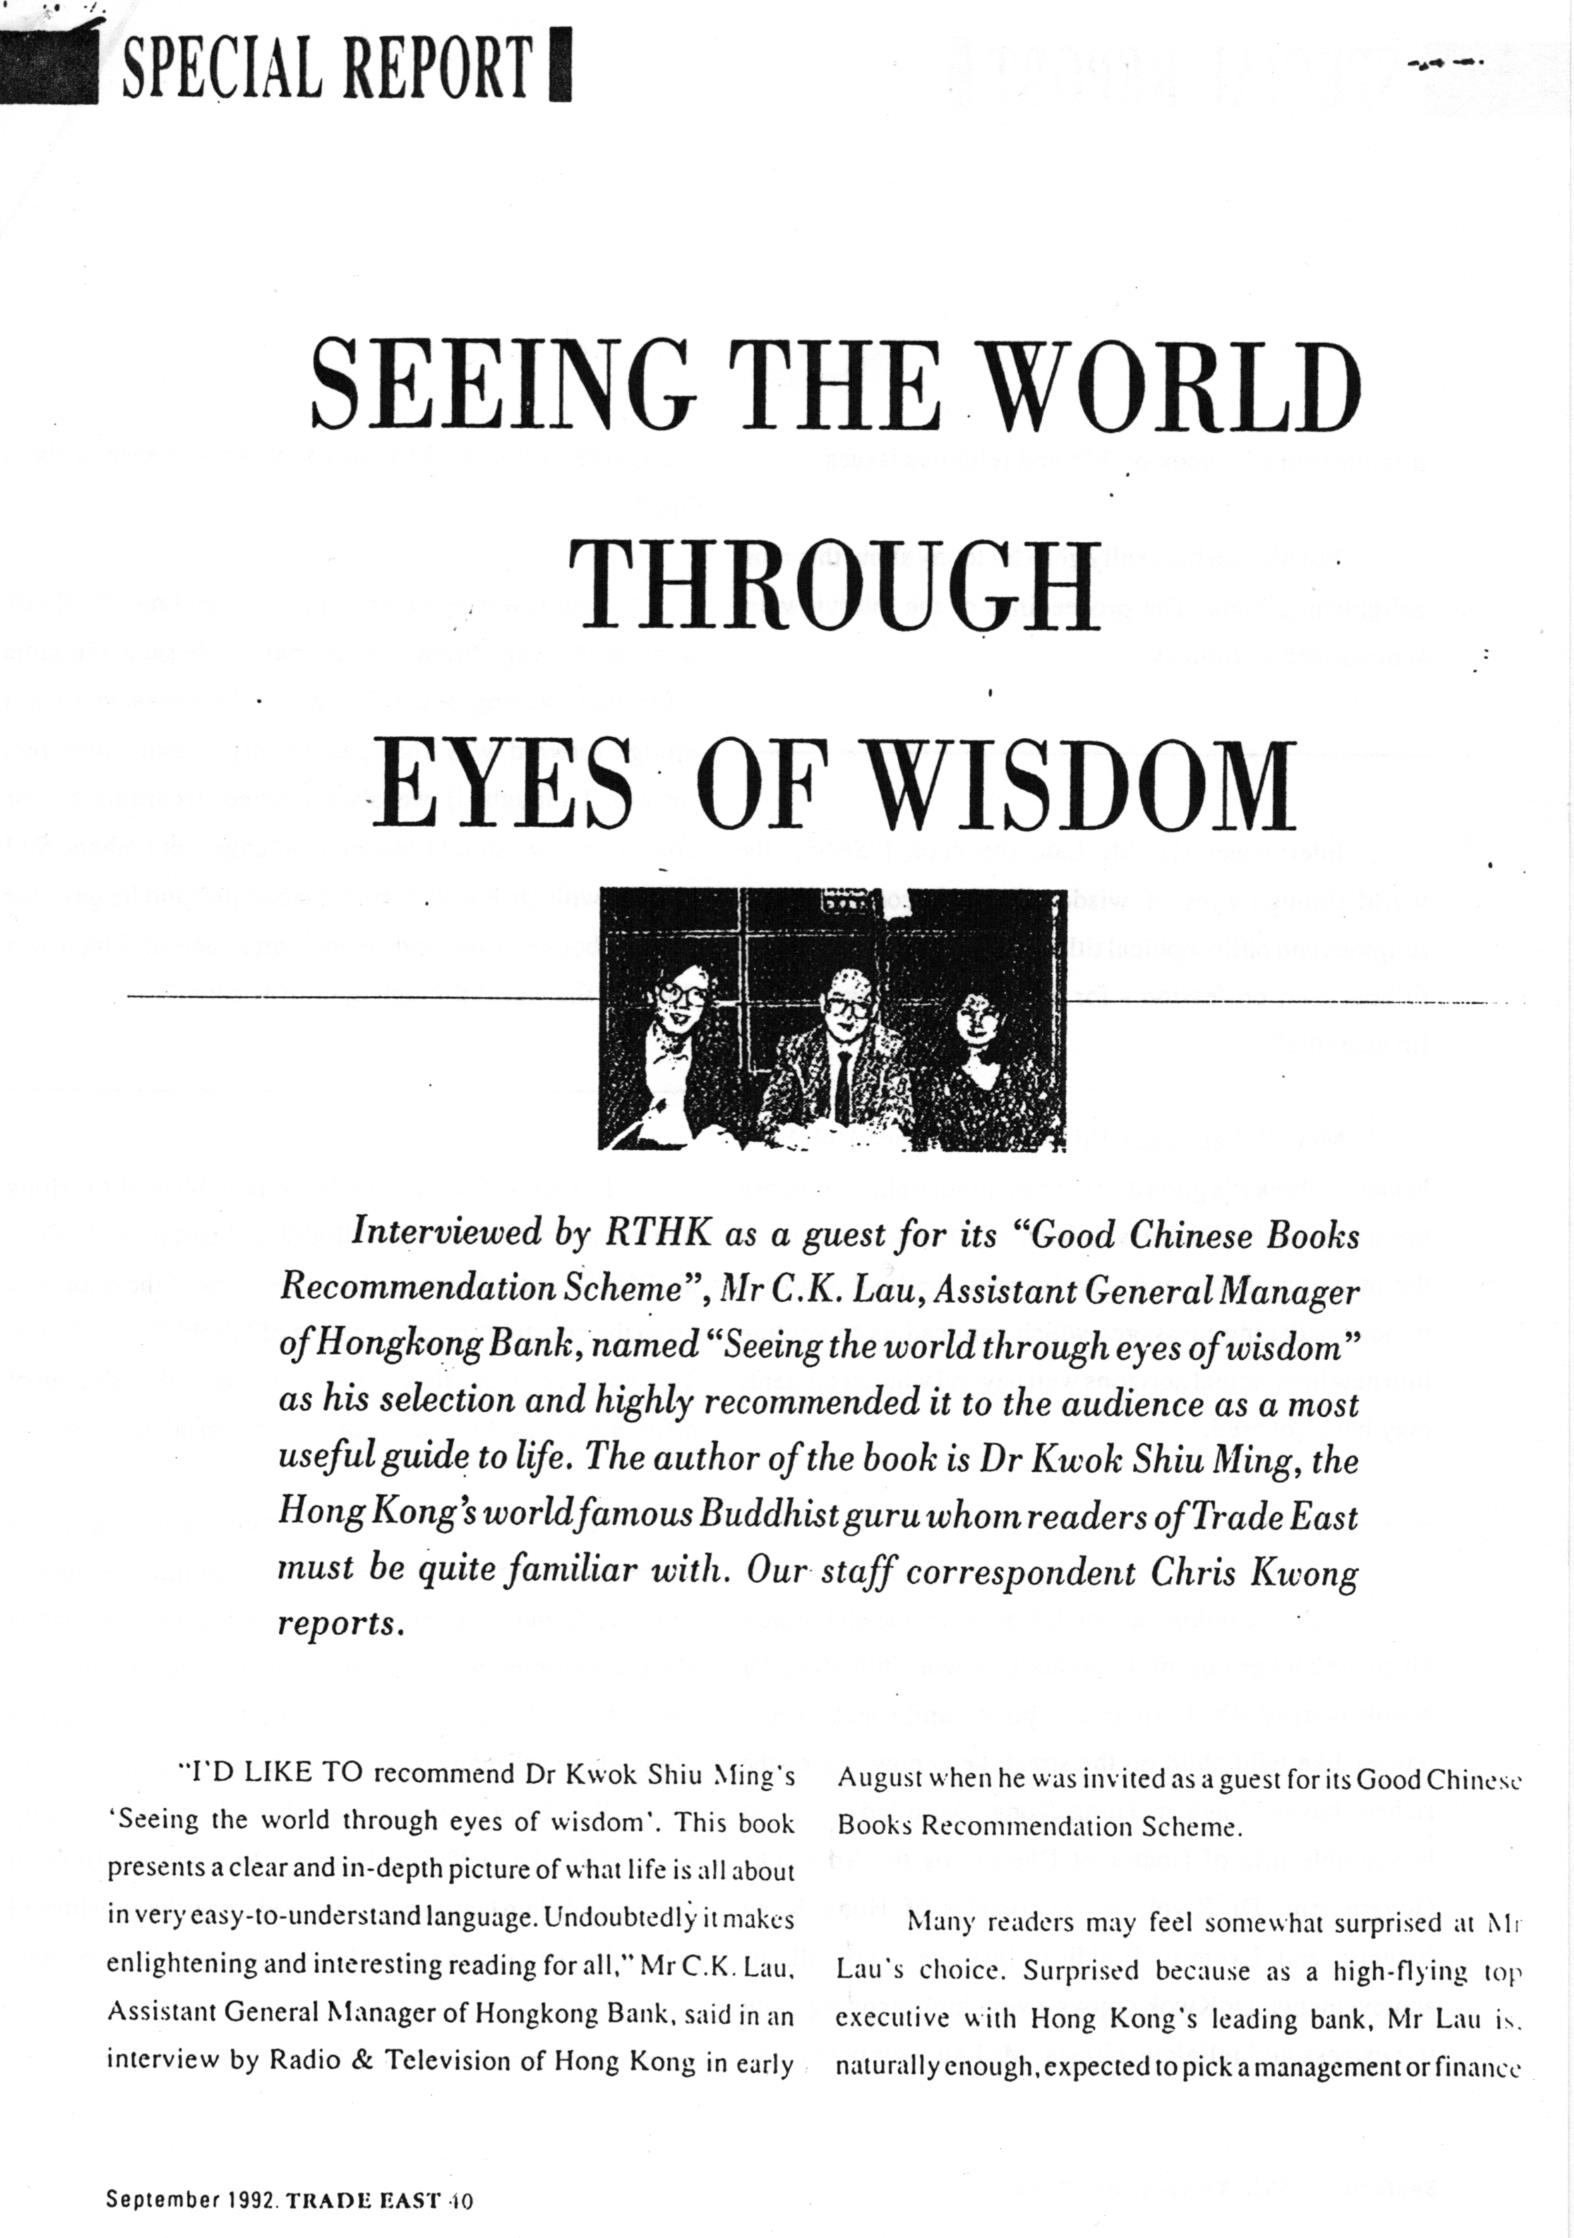 5-September 1992 TRADE EASY (Seeing The World Through Eyes Of Wisdom)_1.jpg